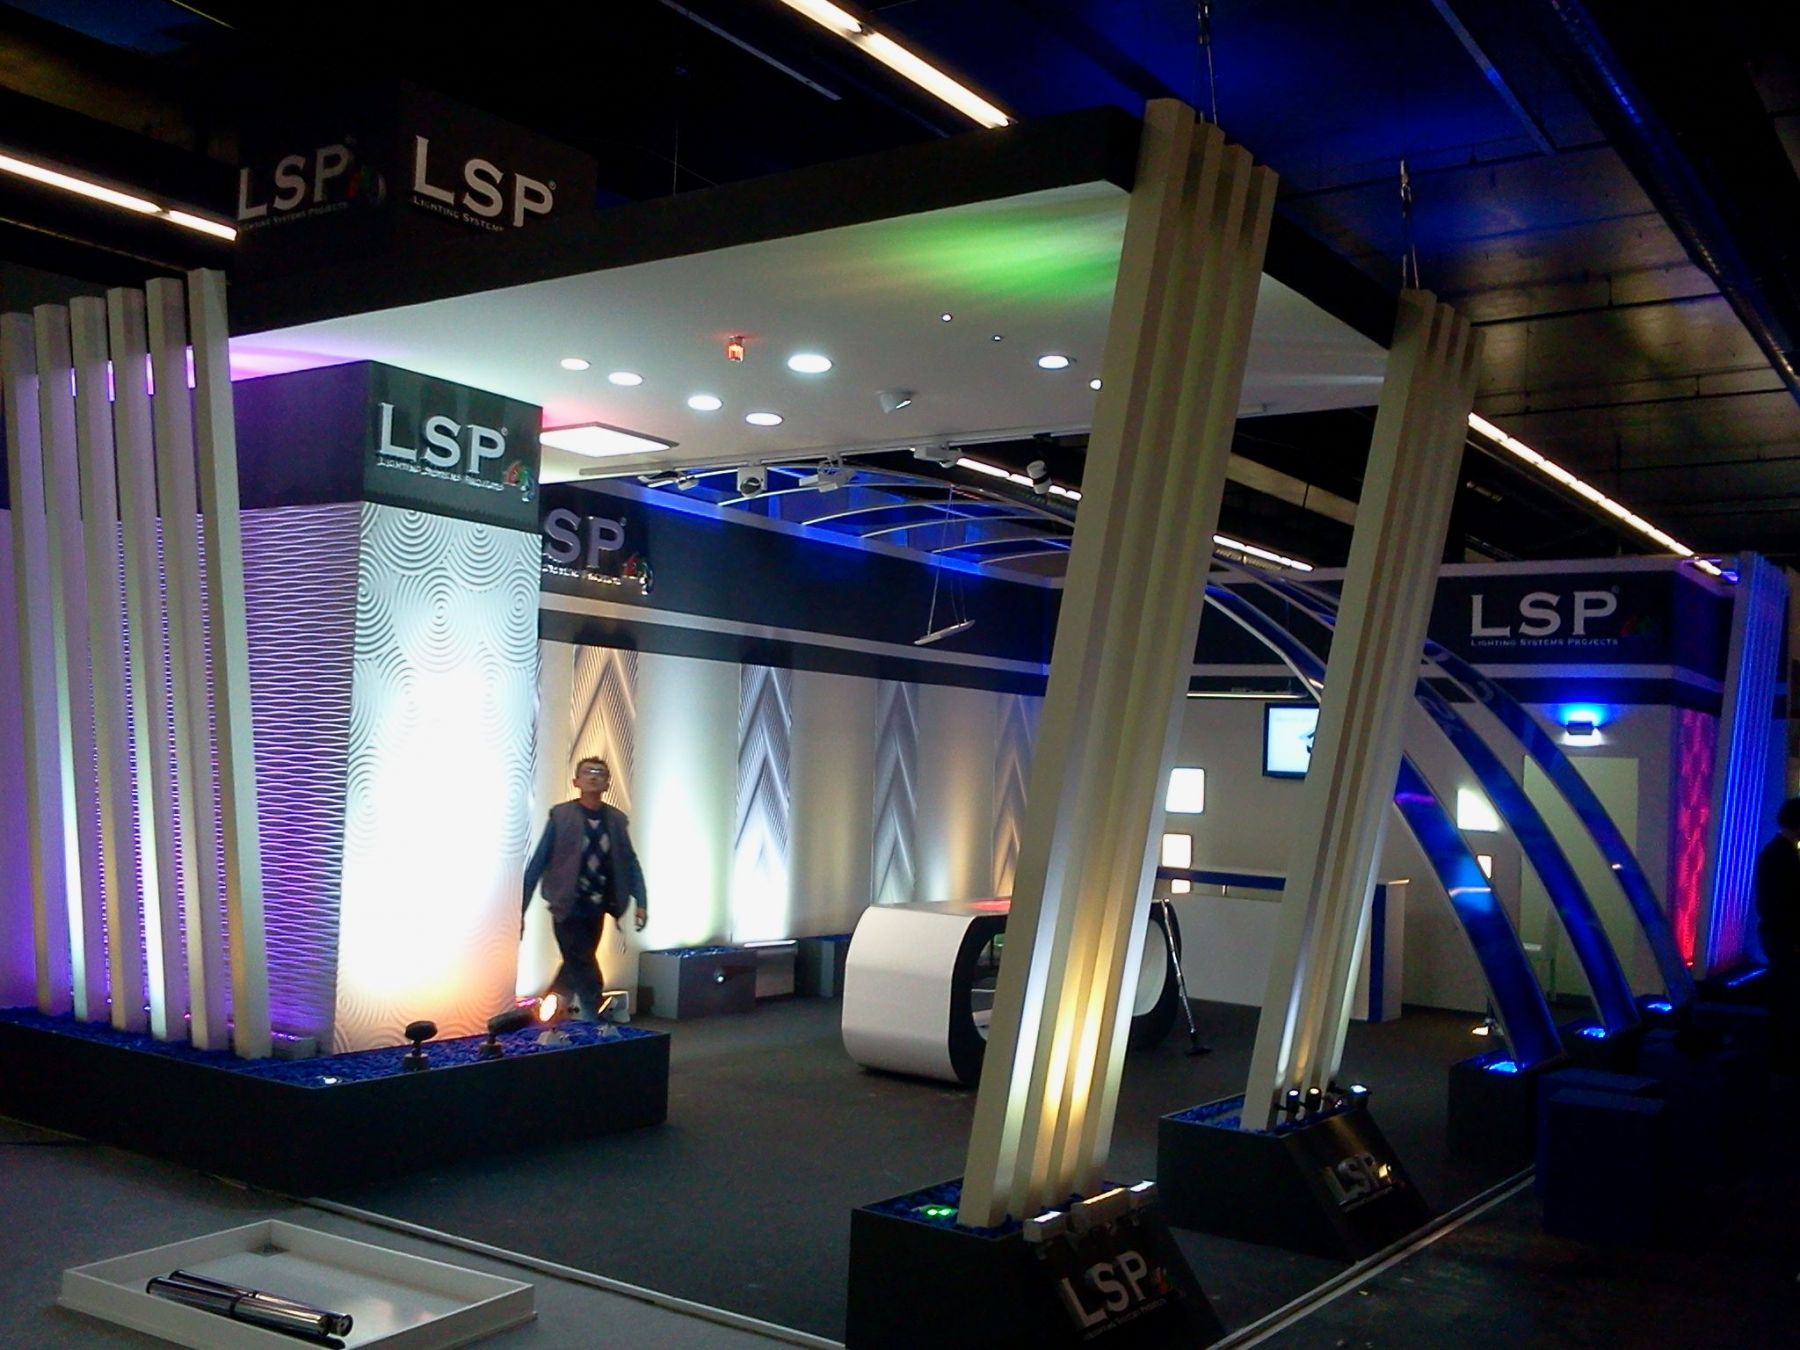 Stand Expo Europa : Asel expo